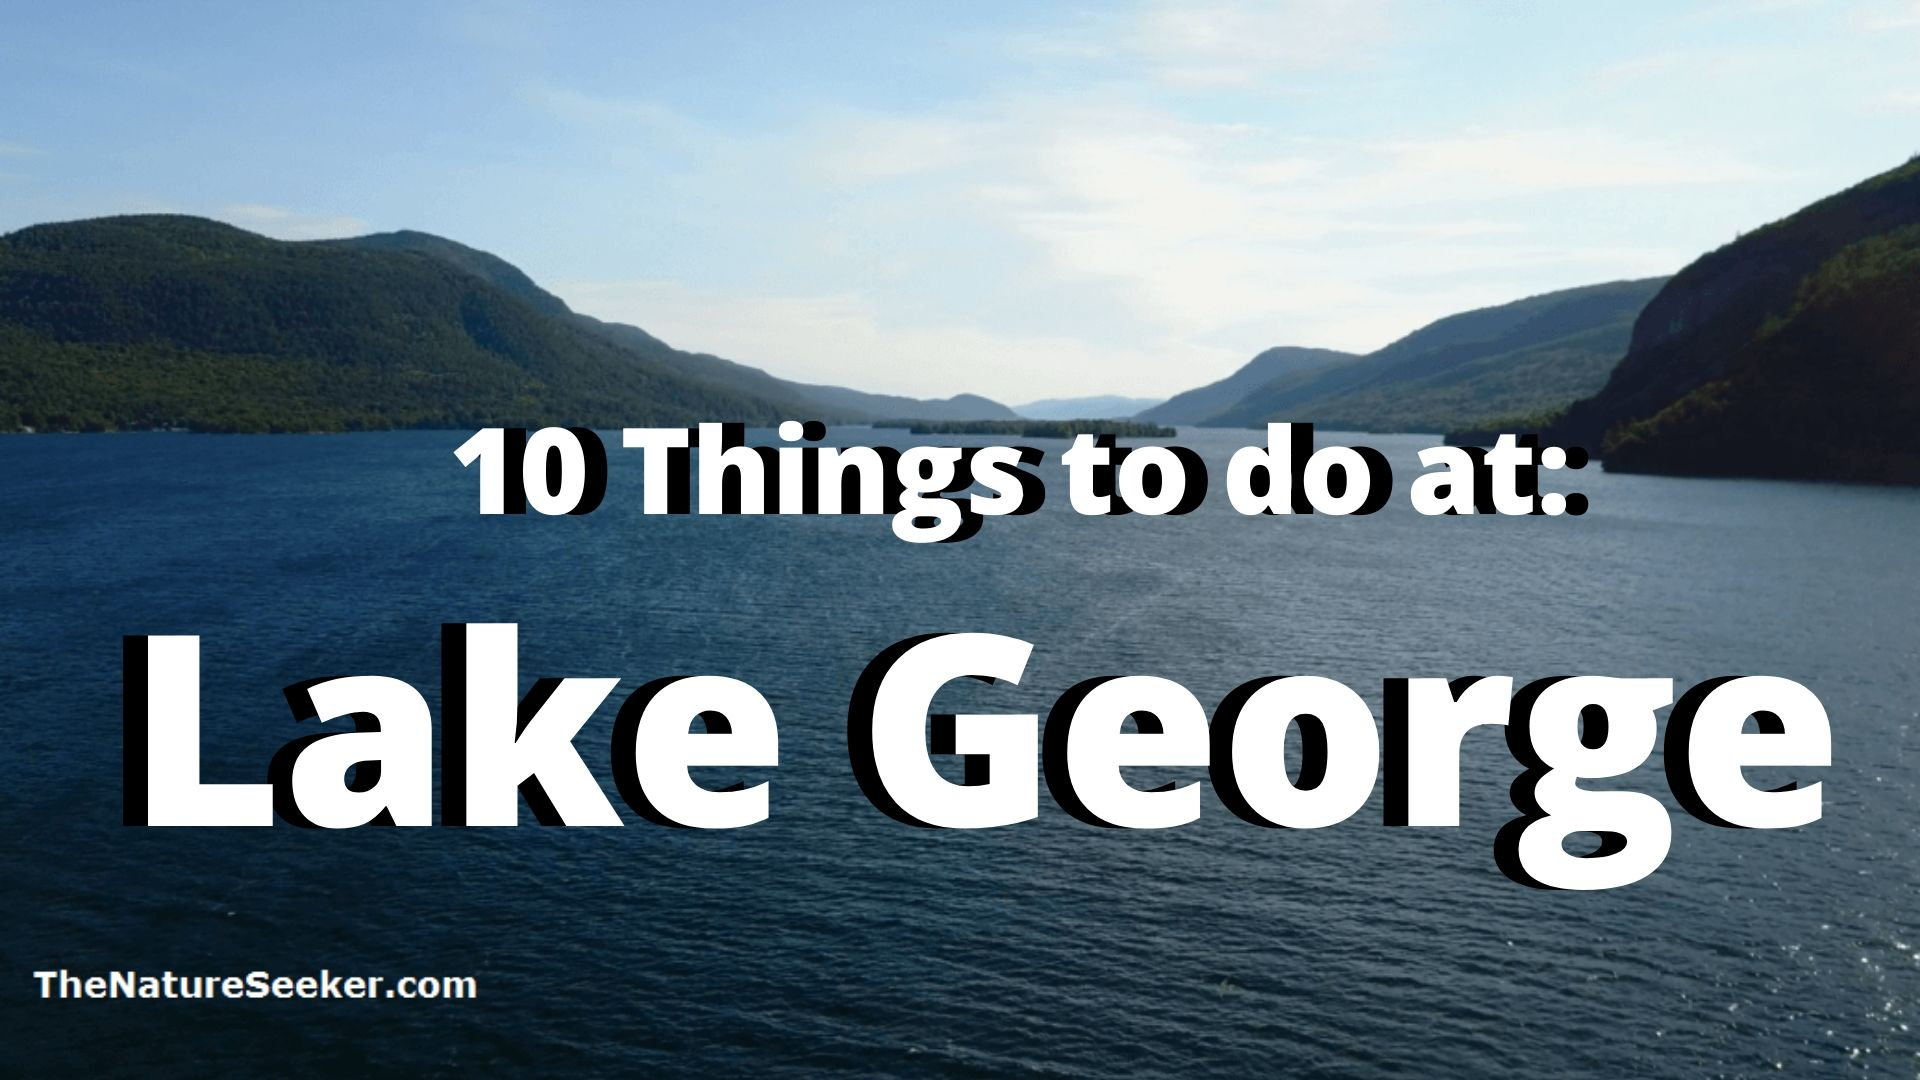 10 things to do at lake george